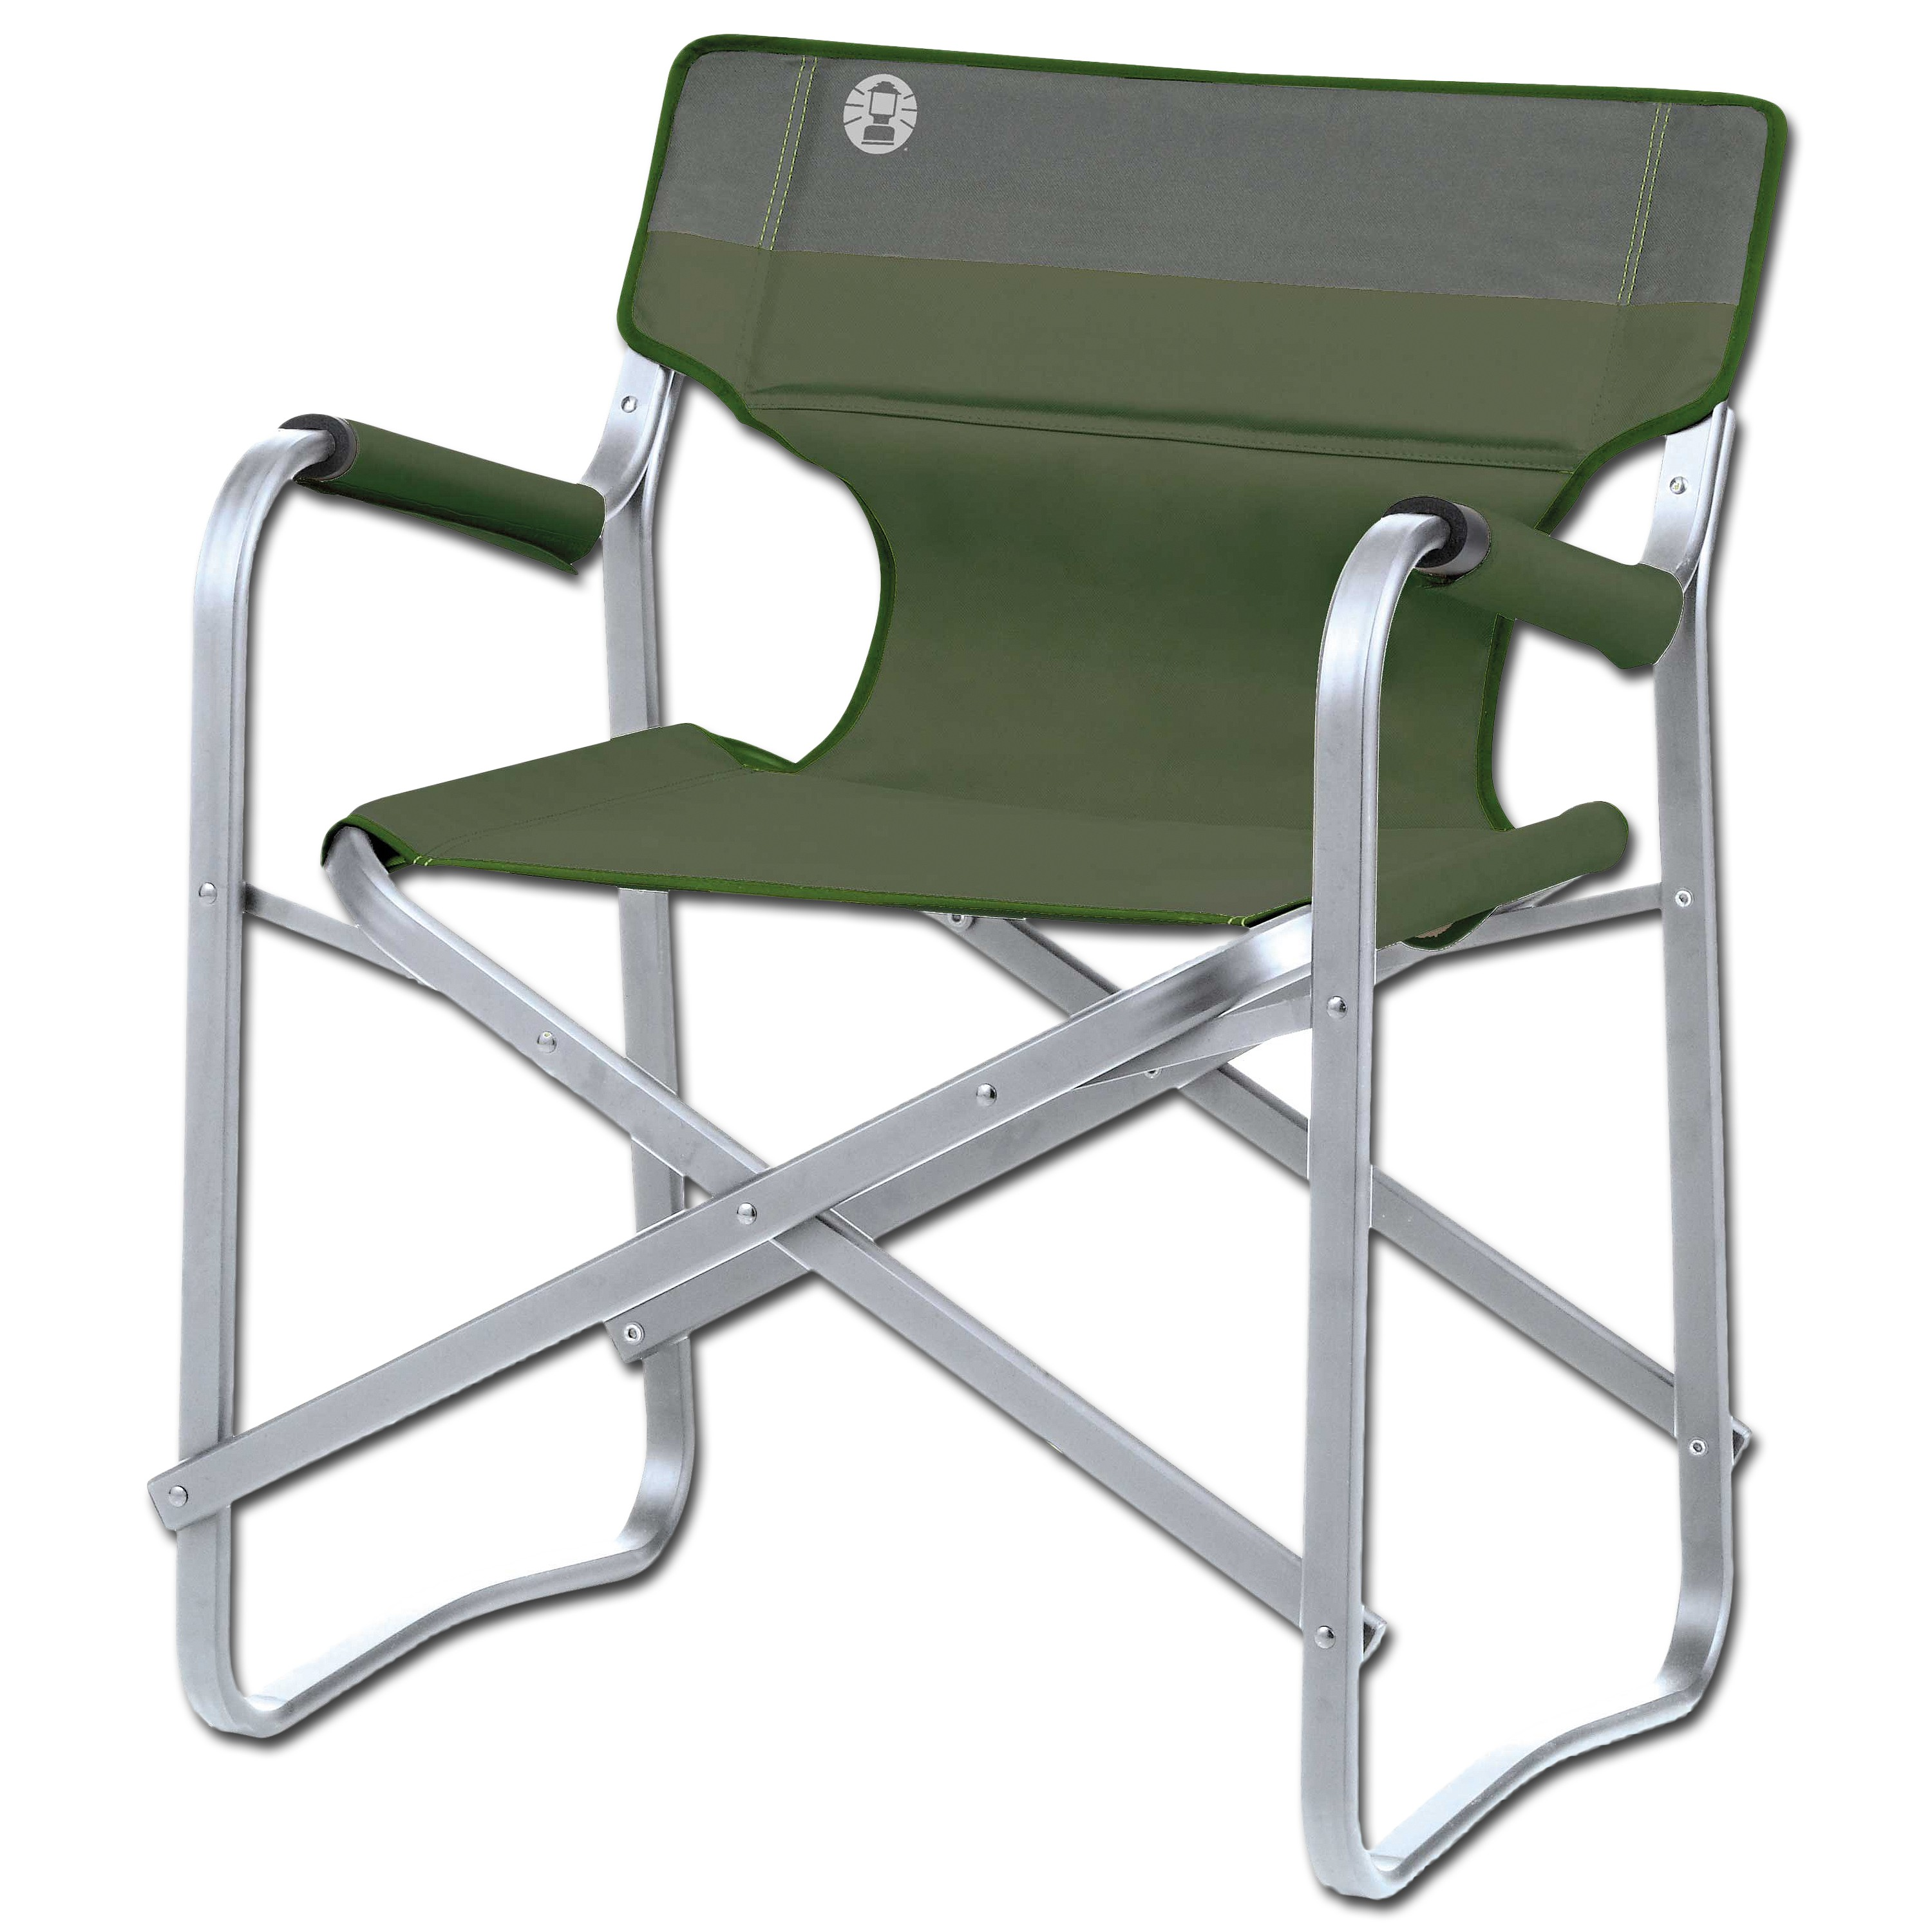 Camping Chair Coleman Deck Chair olive